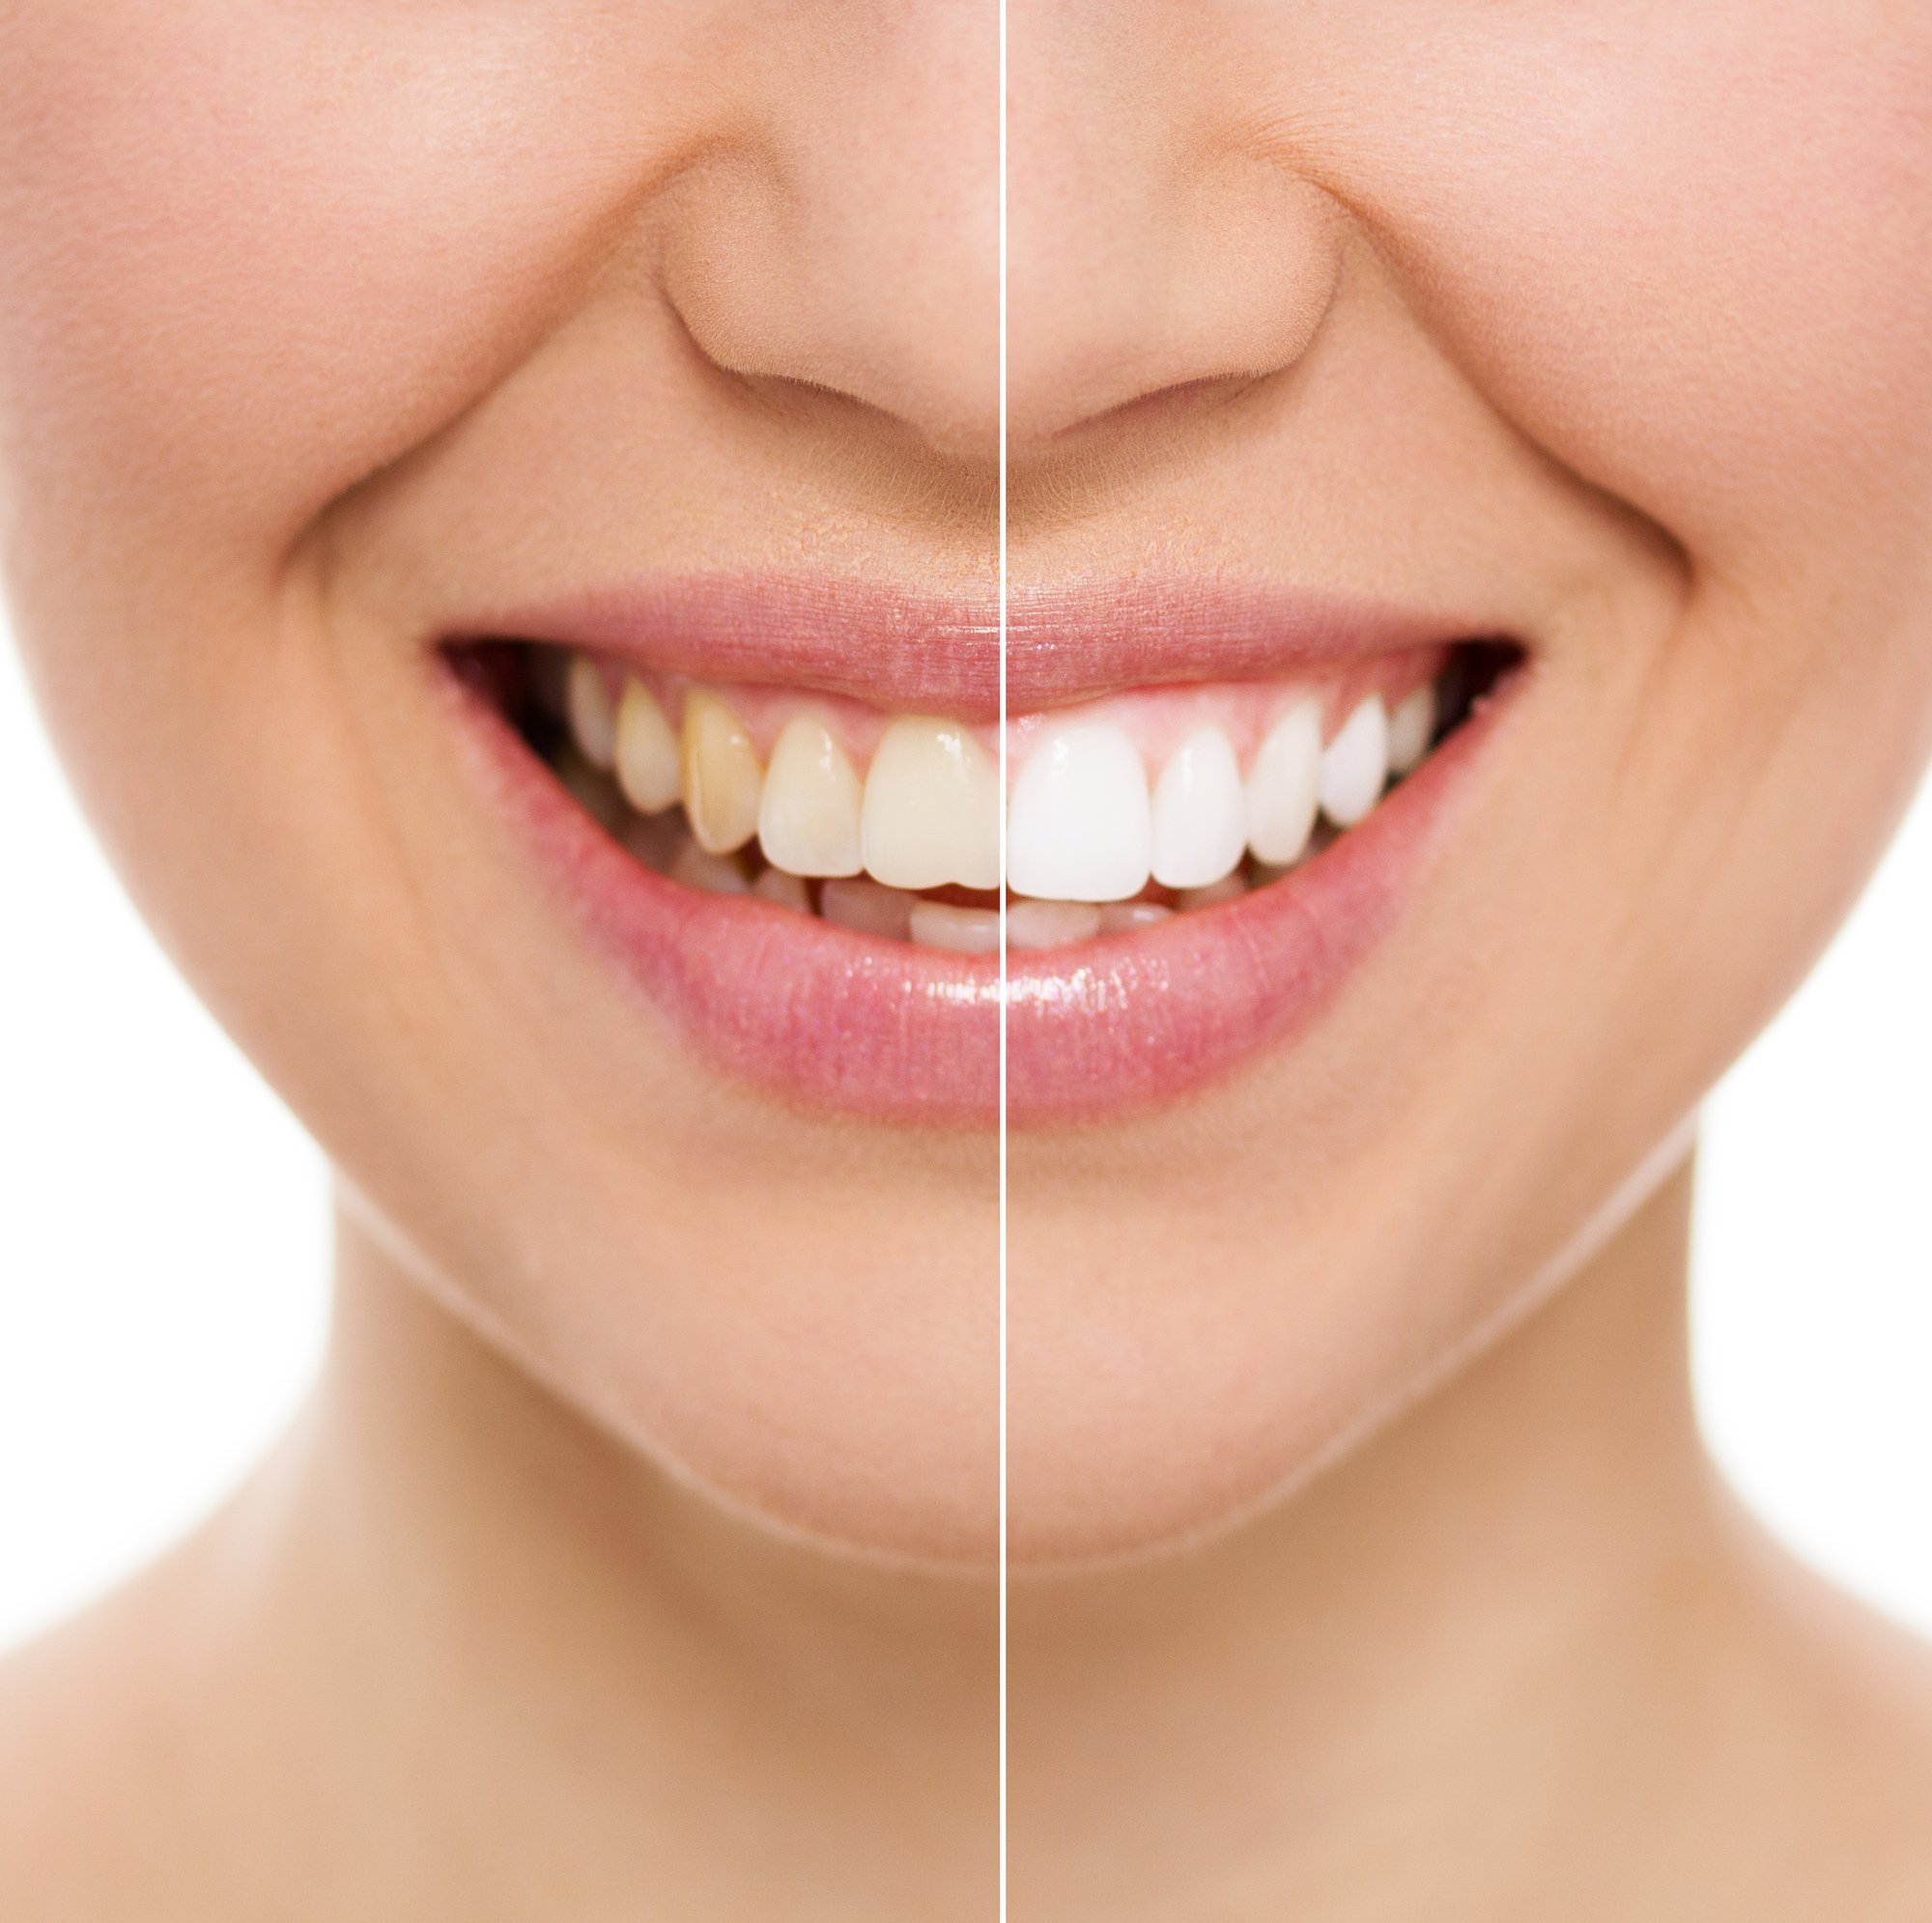 What are the benefits of Cosmetic Dentistry in Boynton Beach?